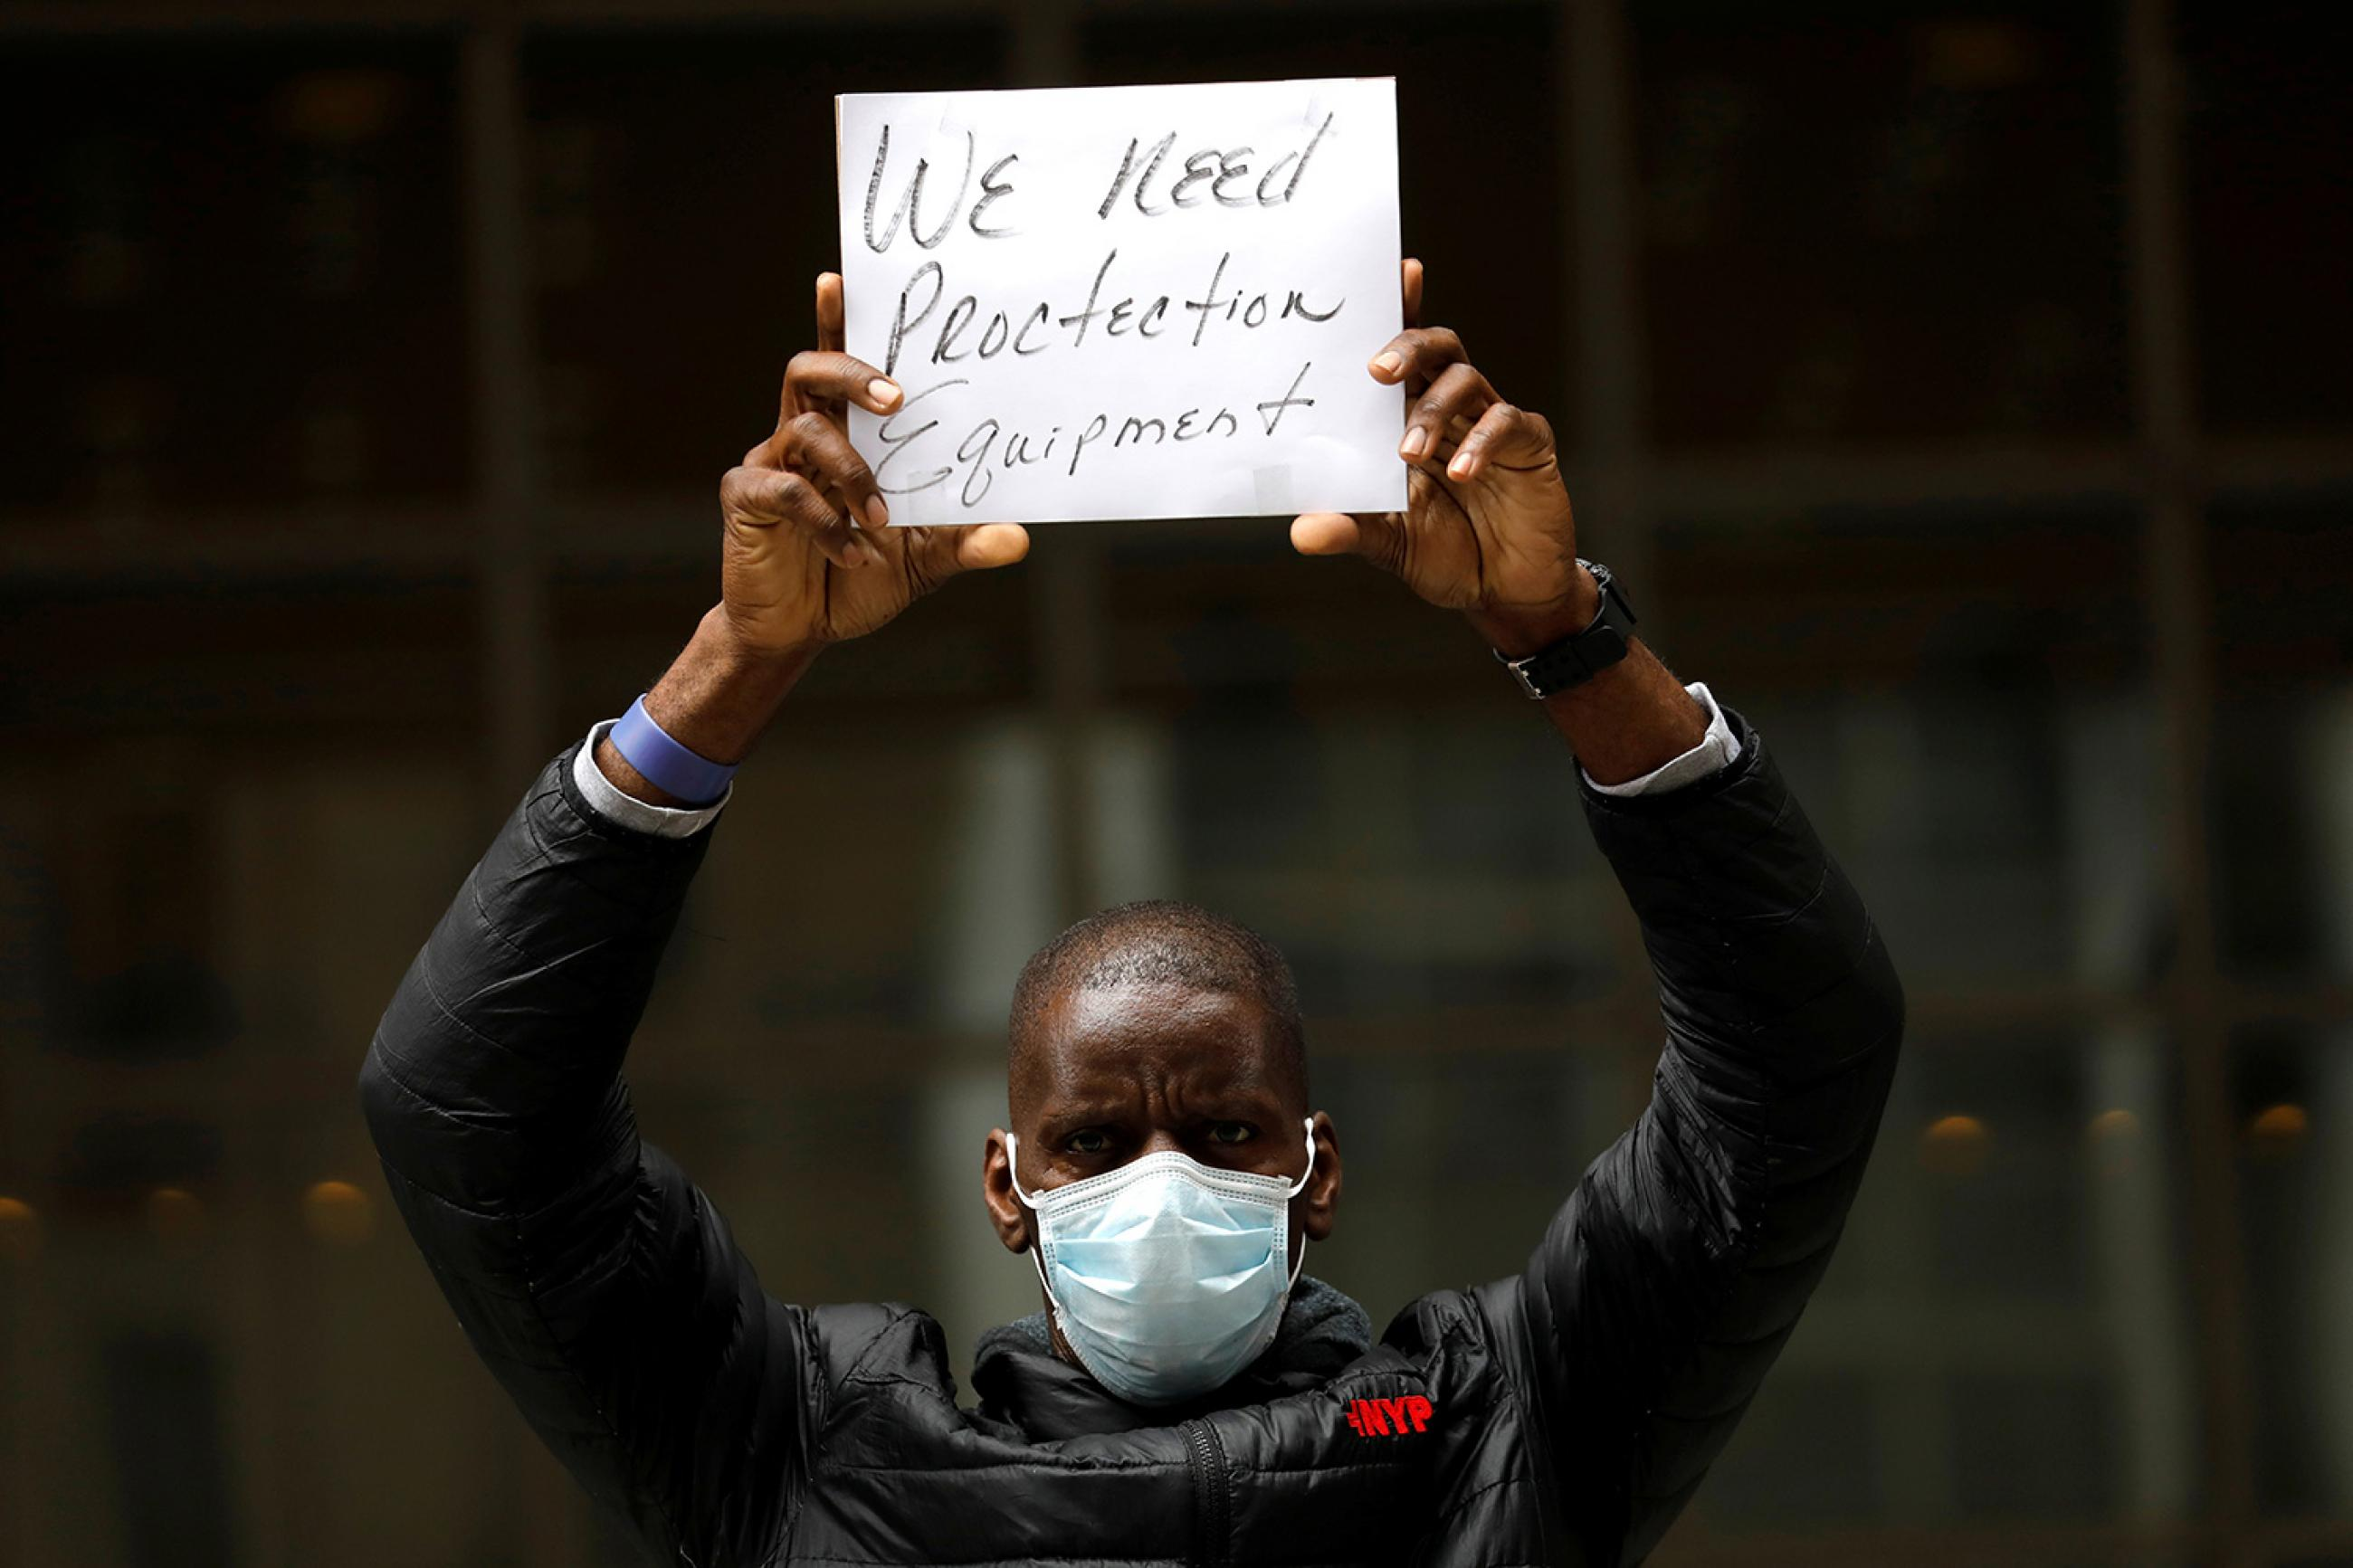 """A health worker in a demonstration calling on federal and local authorities to provide more Personal Protective Equipment outside New York-Presbyterian Medical Center in Manhattan on April 9, 2020. The image shows a man wearing a mask and holding a small sign above his head that says, """"We need protection equipment."""" REUTERS/Mike Segar"""